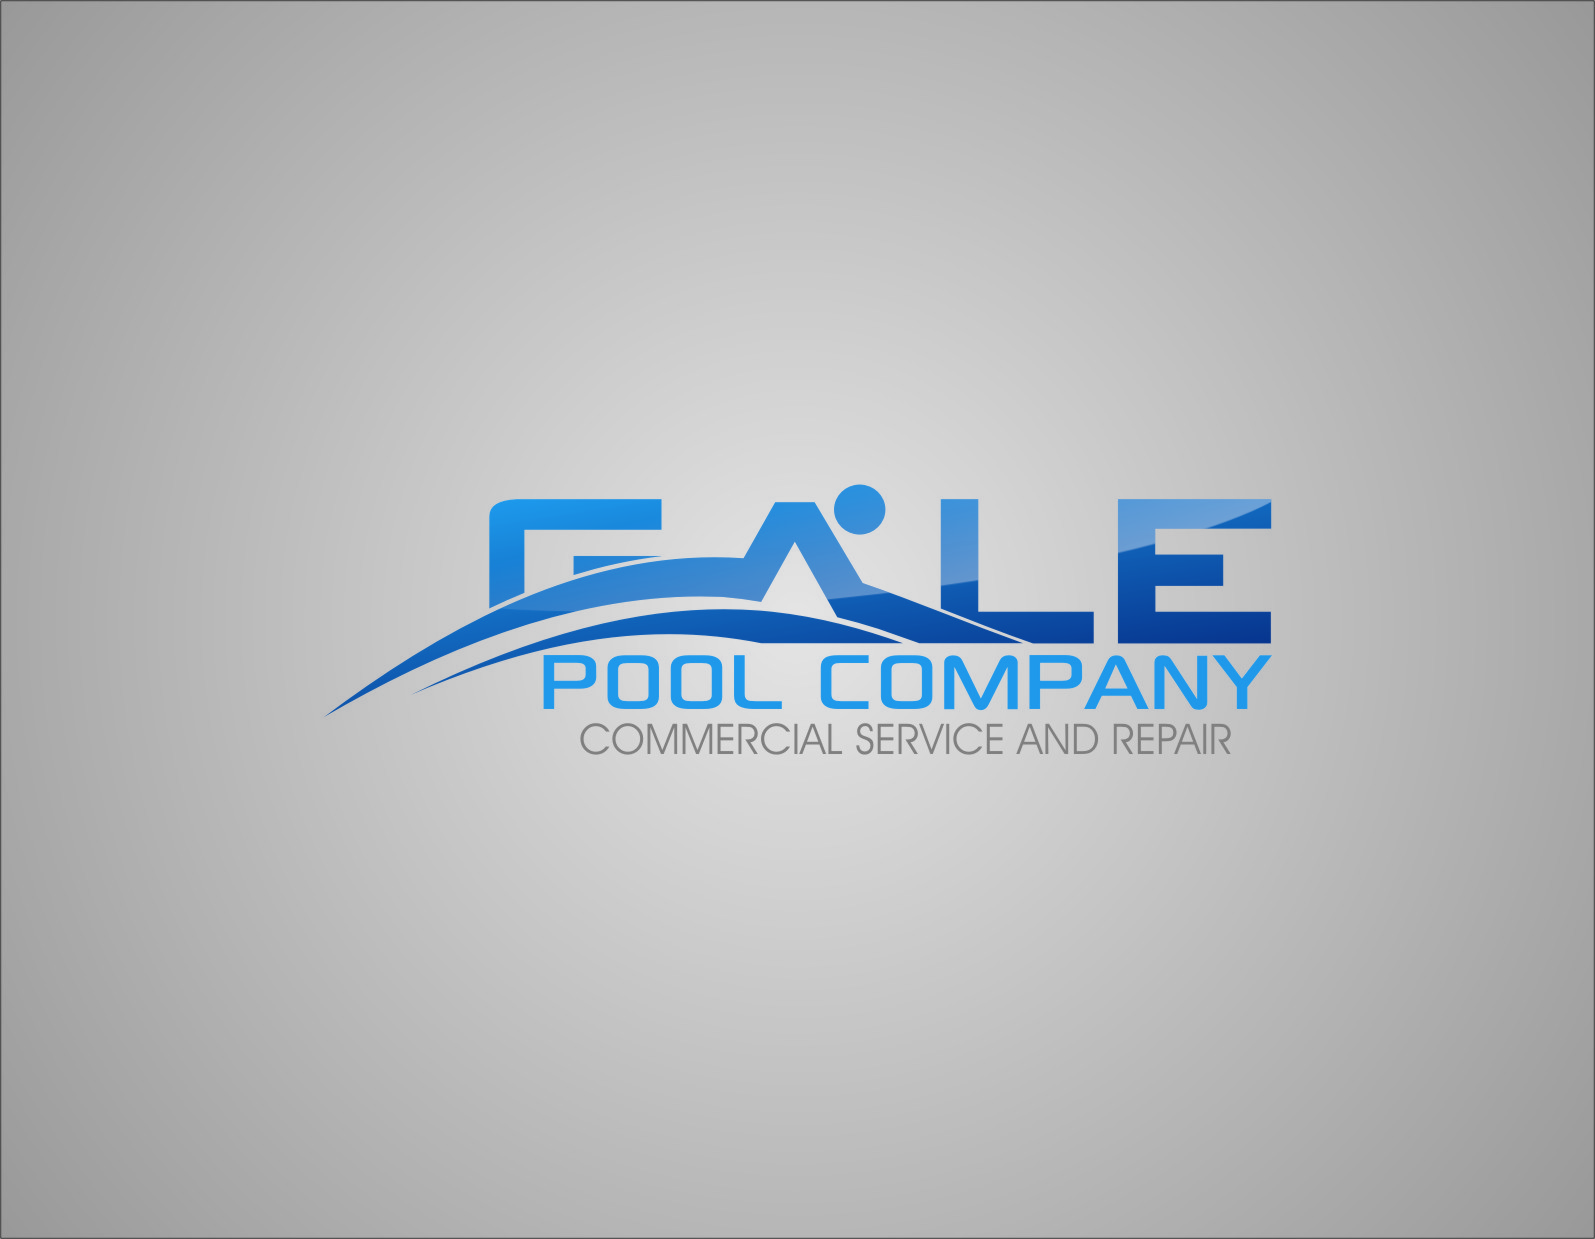 Logo Design by Ngepet_art - Entry No. 52 in the Logo Design Contest Imaginative Logo Design for Gale Pool Company.